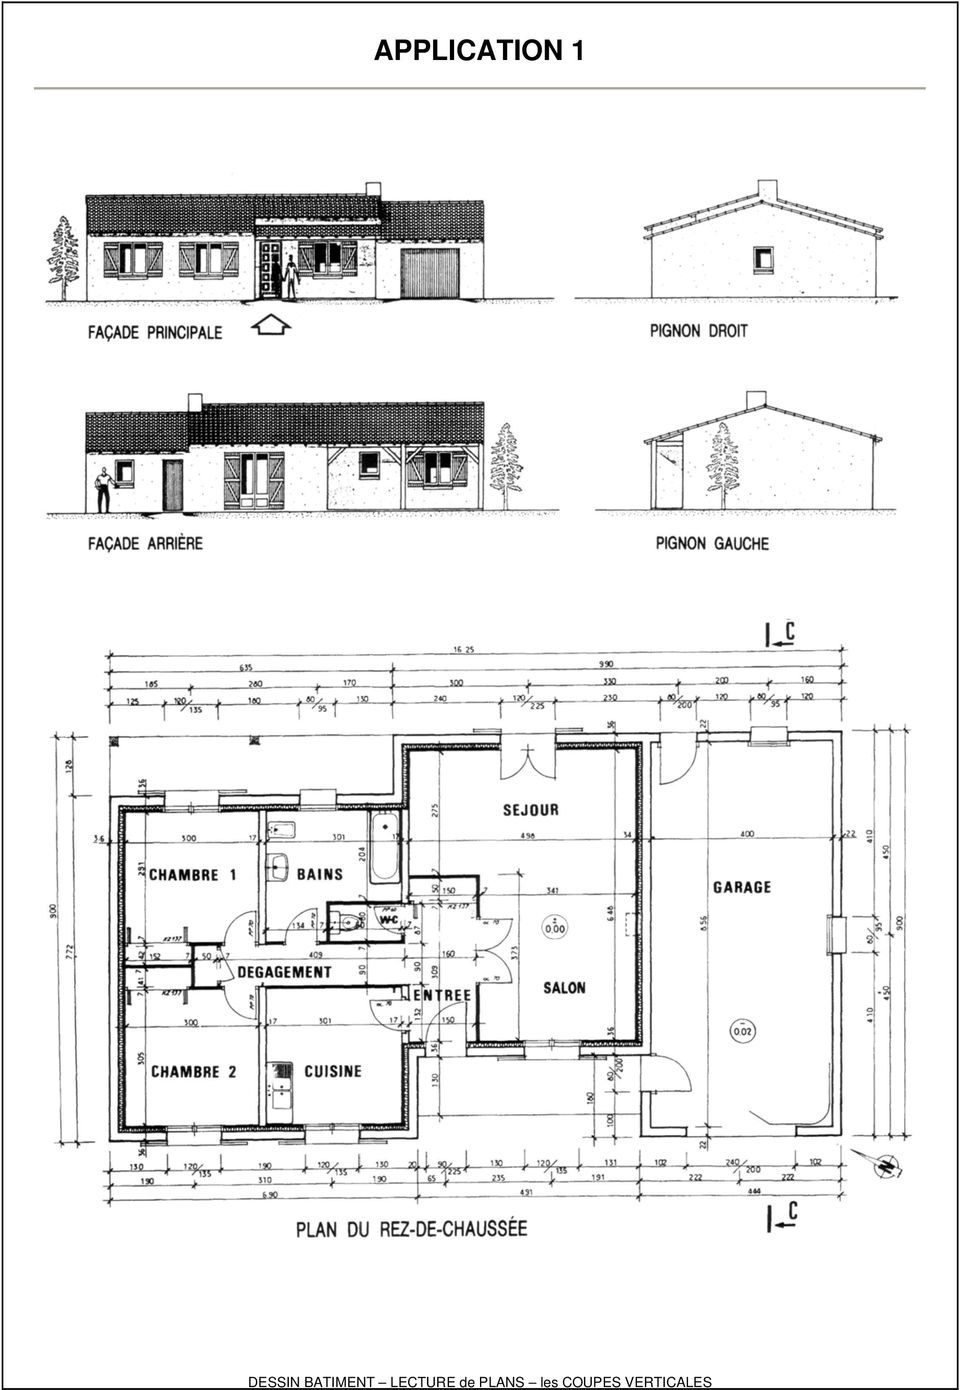 Application dessin plan maison meilleur logiciel de plan for Application plan de maison